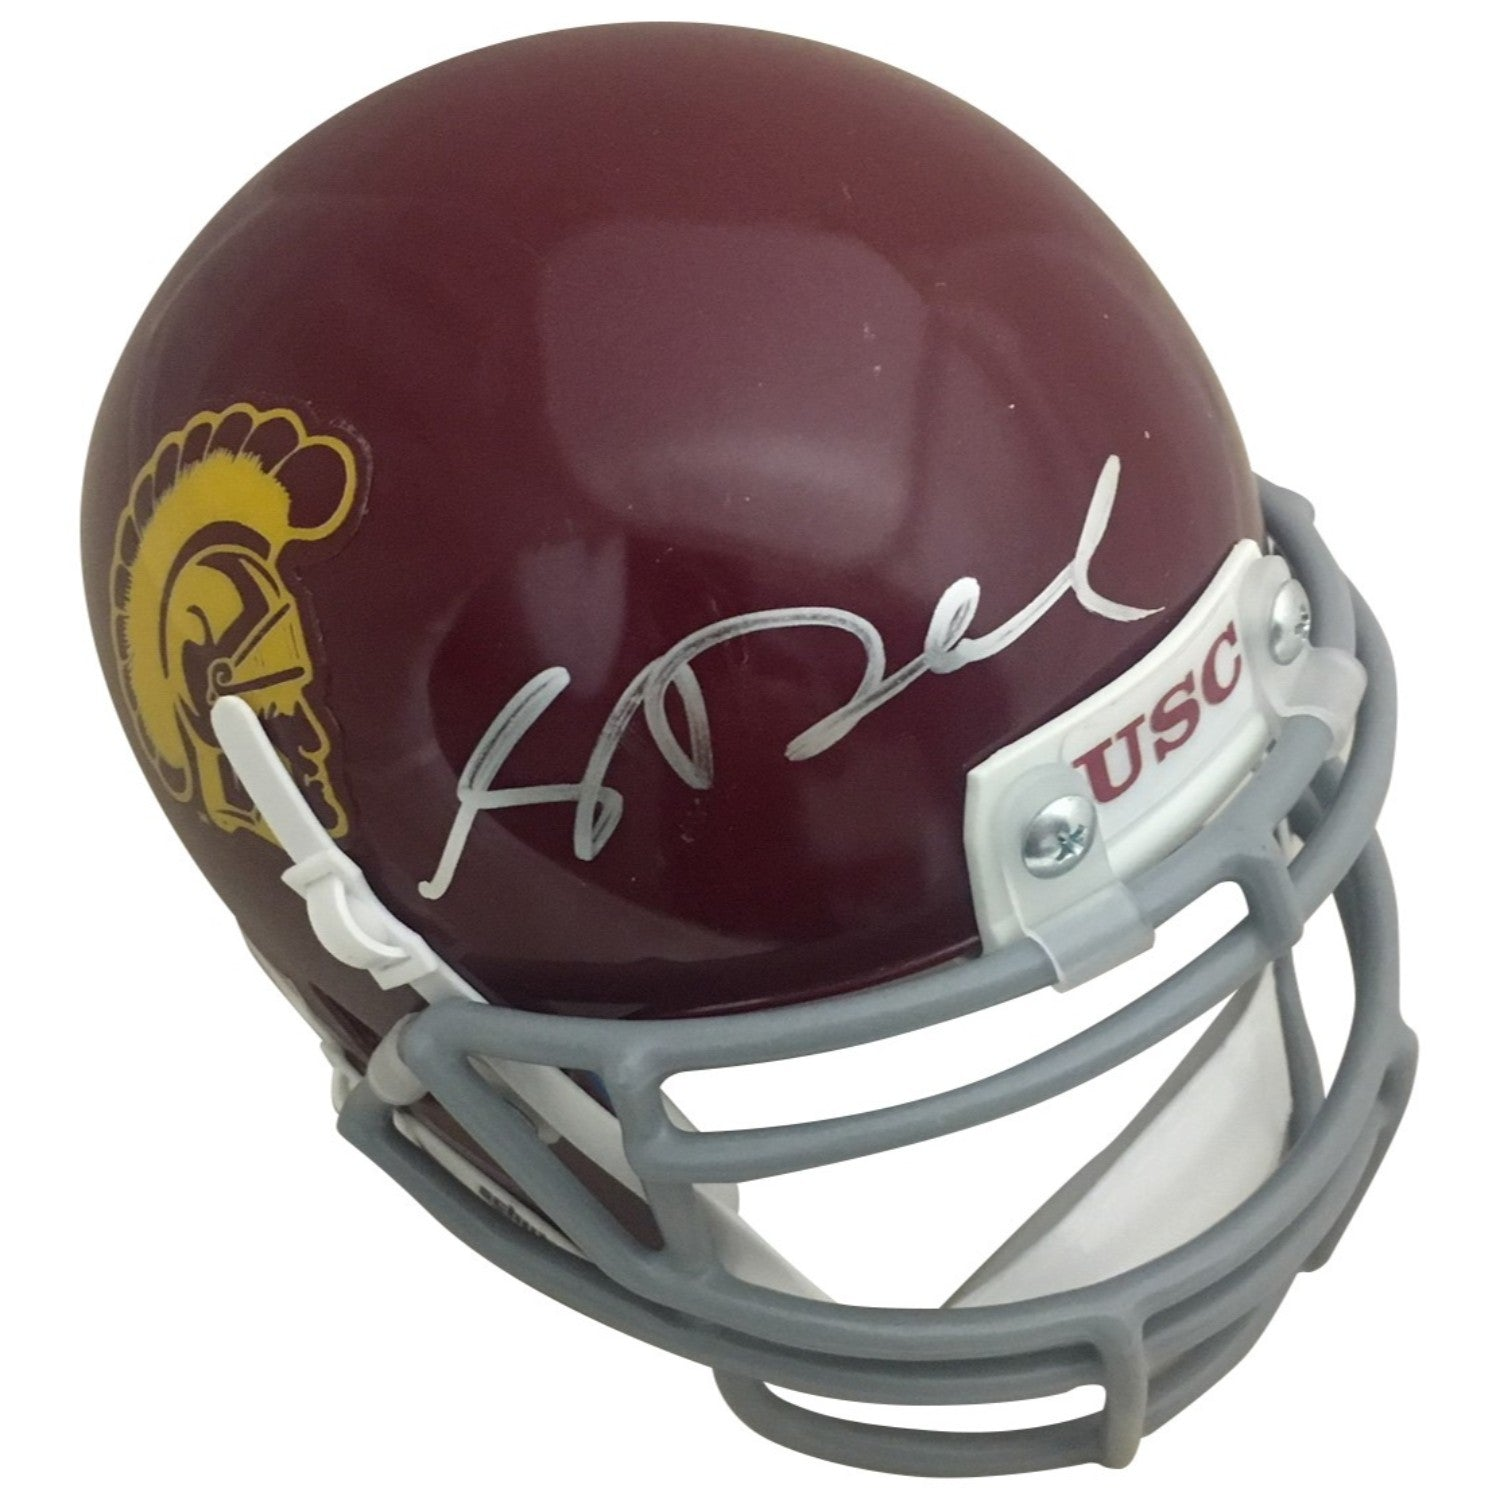 Sam Darnold Autographed USC Trojans Signed Football Mini Helmet JSA COA 3-Powers Sports Memorabilia